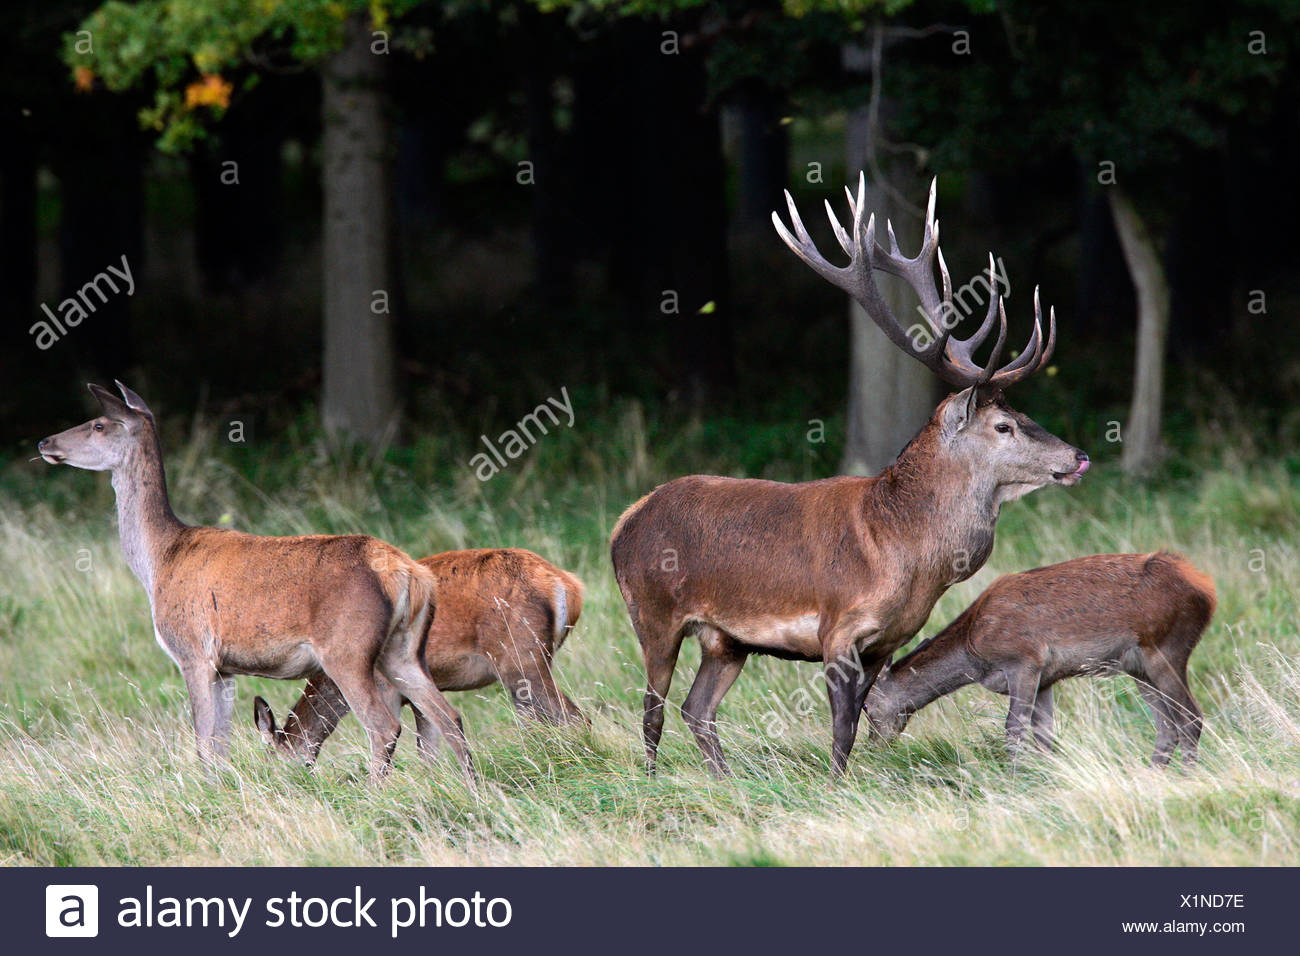 Red stag during the rut with hinds - red deer in heat - male and female - behaviour (Cervus elaphus) Stock Photo